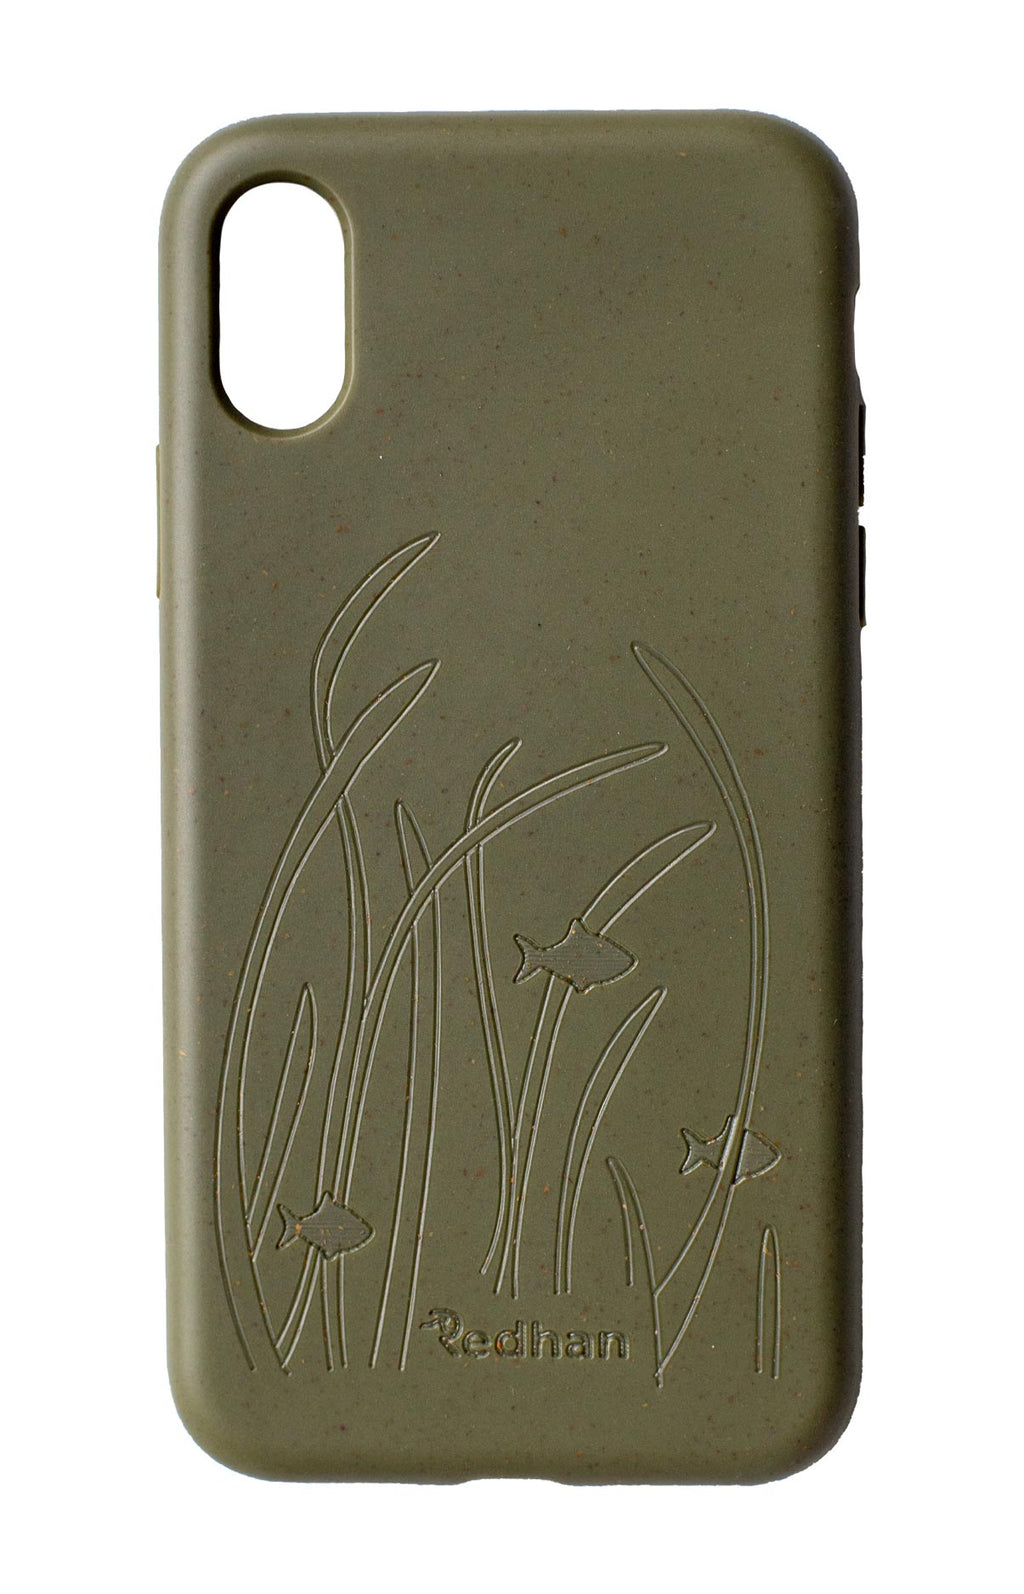 Eco Friendly iPhone X / XS Phone Case - Seagrass in Olive Green